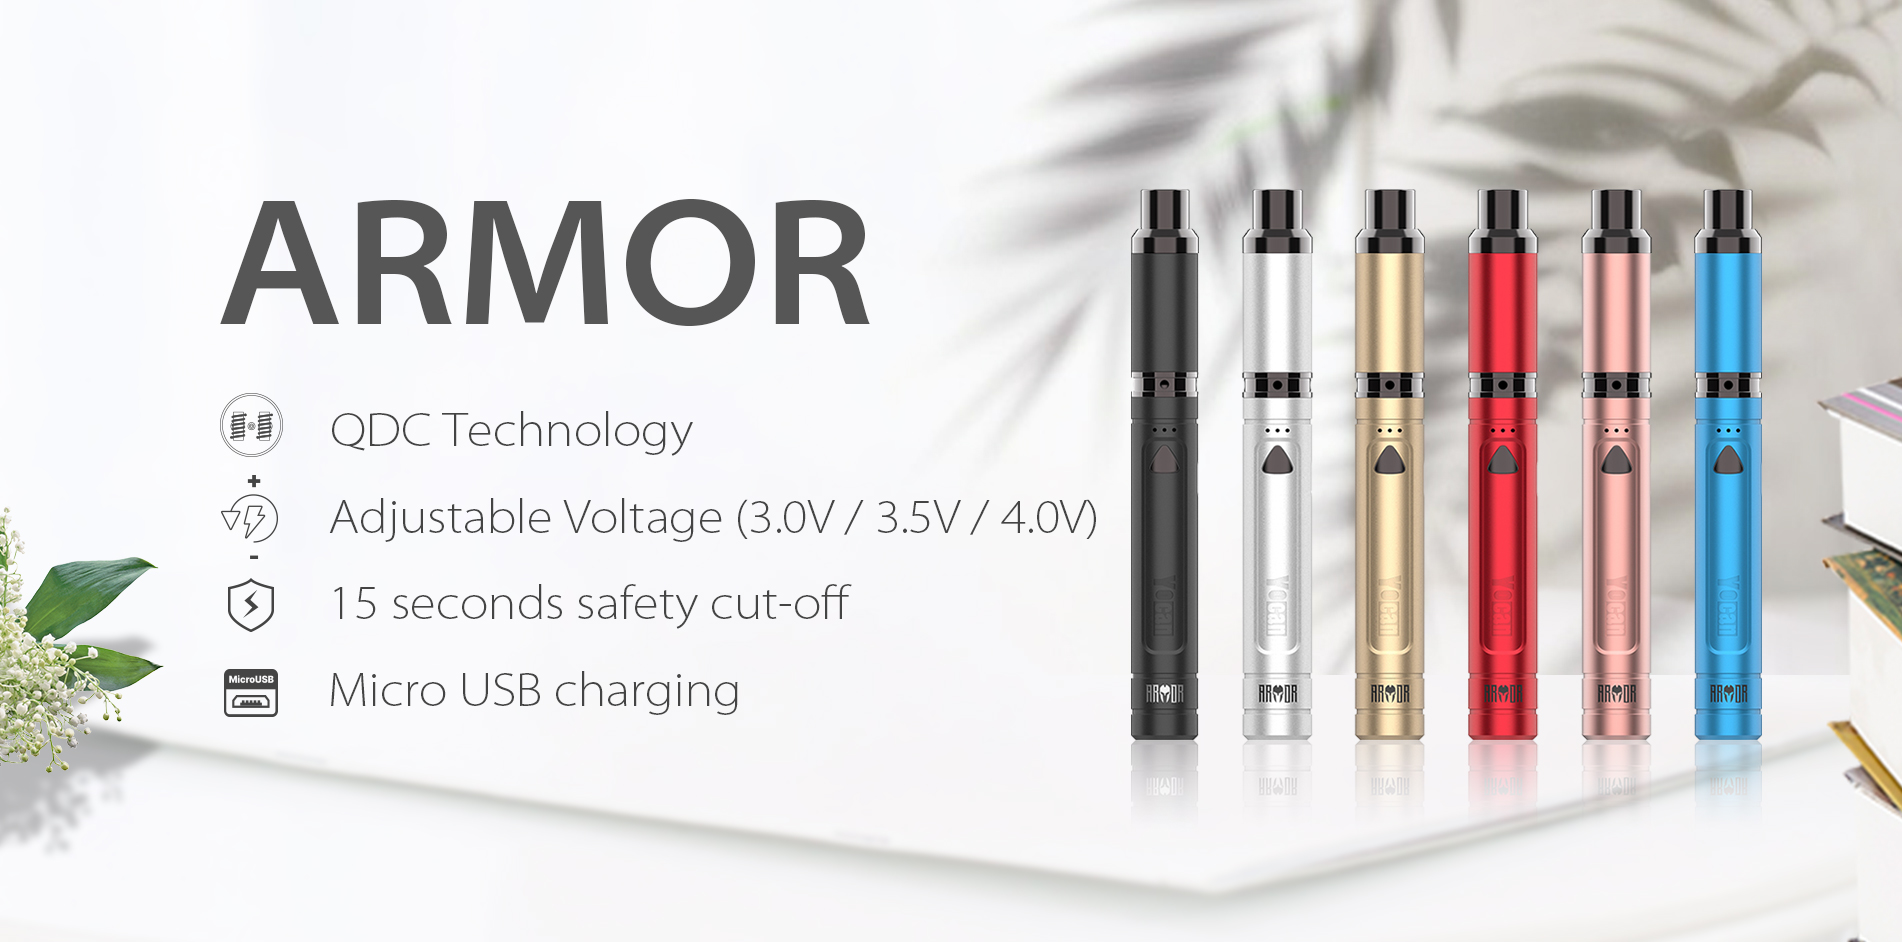 Yocan Armor Vaporizer pen has everything you need for vaping on the go in any place.